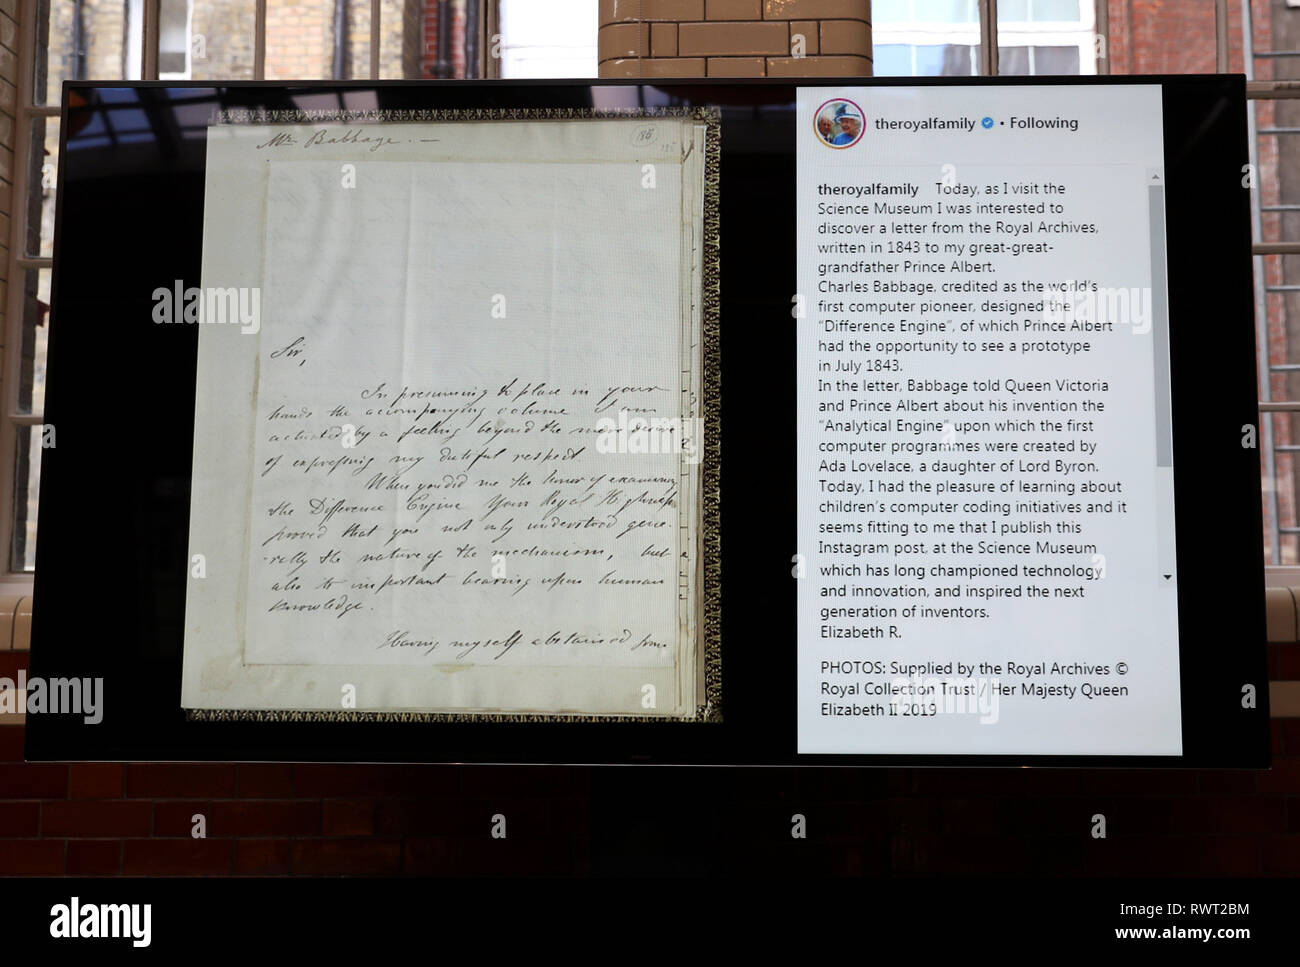 Queen Elizabeth II's first Instagram post is displayed alongside an 1843 letter to Prince Albert from Charles Babbage, which was posted to the social media site during her visit to the Science Museum for the announcement of their summer exhibition 'Top Secret' in Kensington, London. - Stock Image